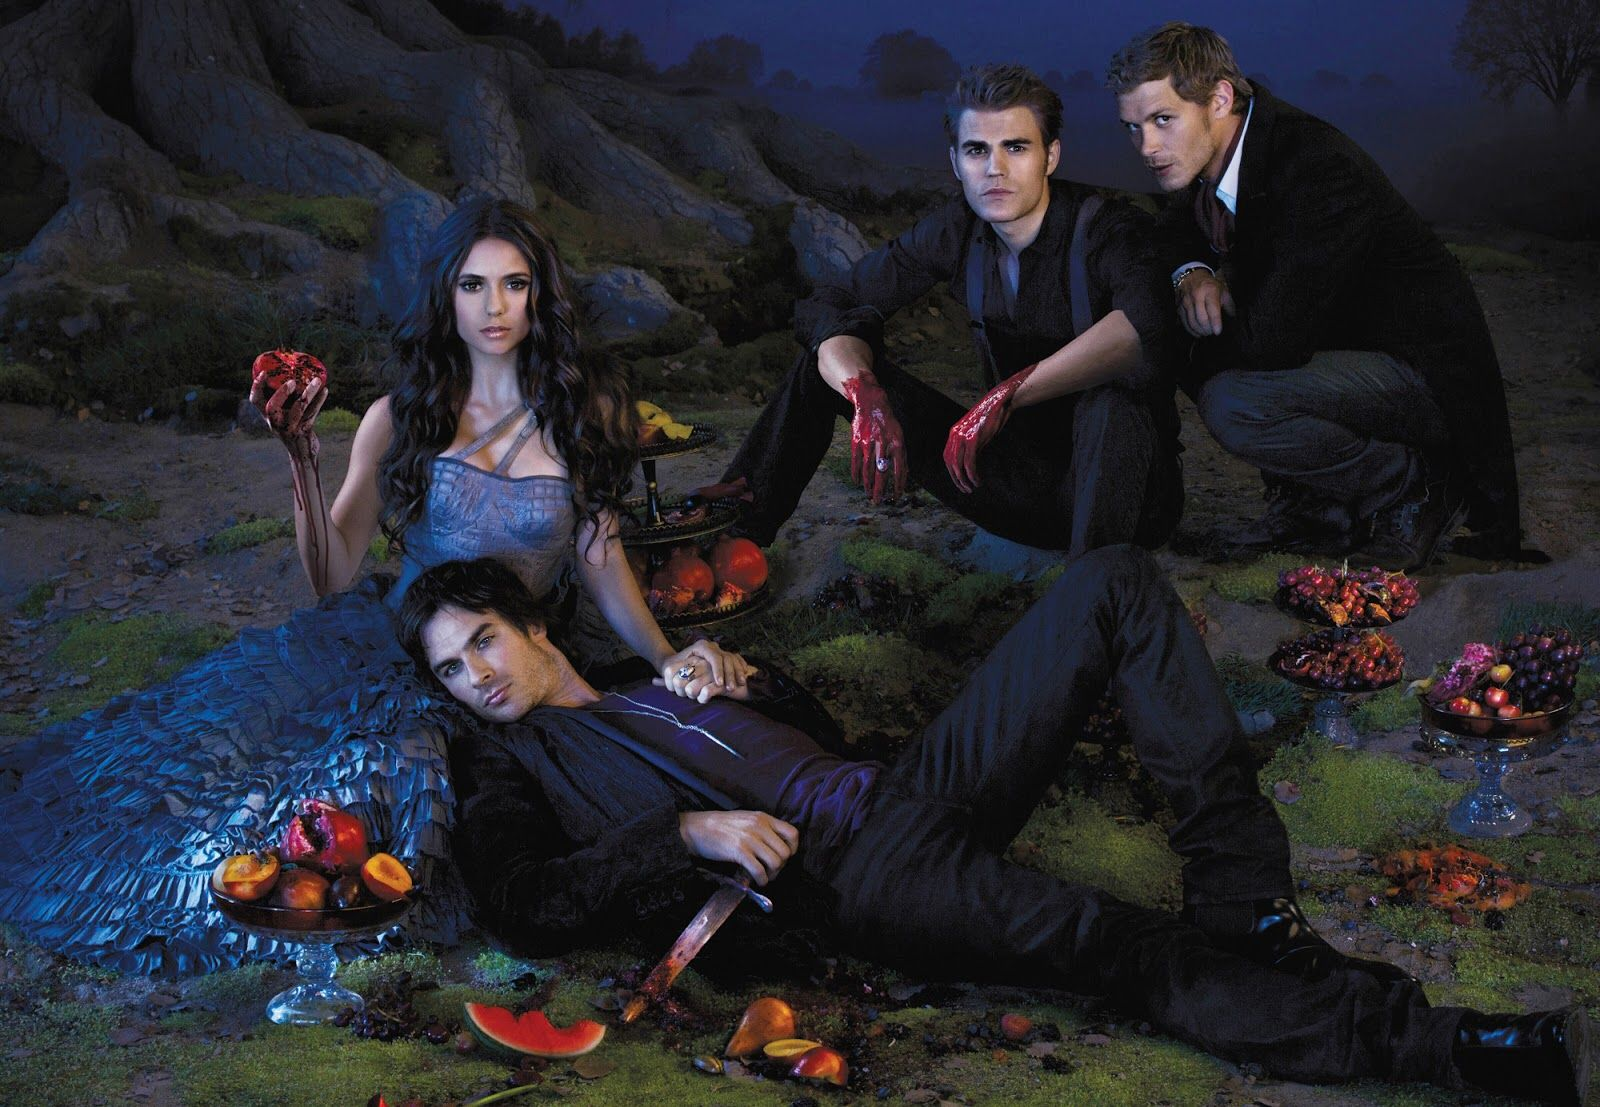 The Vampire Diaries Photos, Wallpapers and Pictures Gallery – free ...